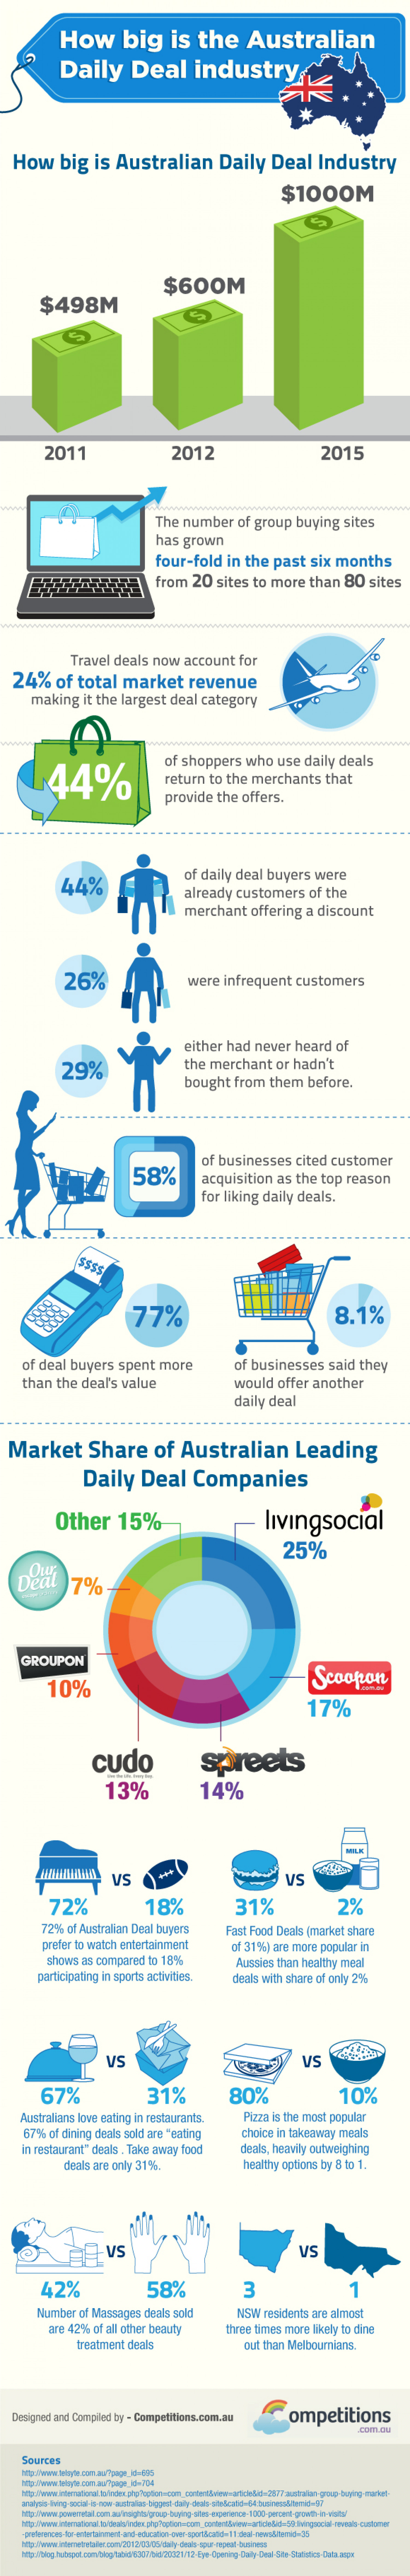 How Big is Australian Daily Deals Industry Infographic